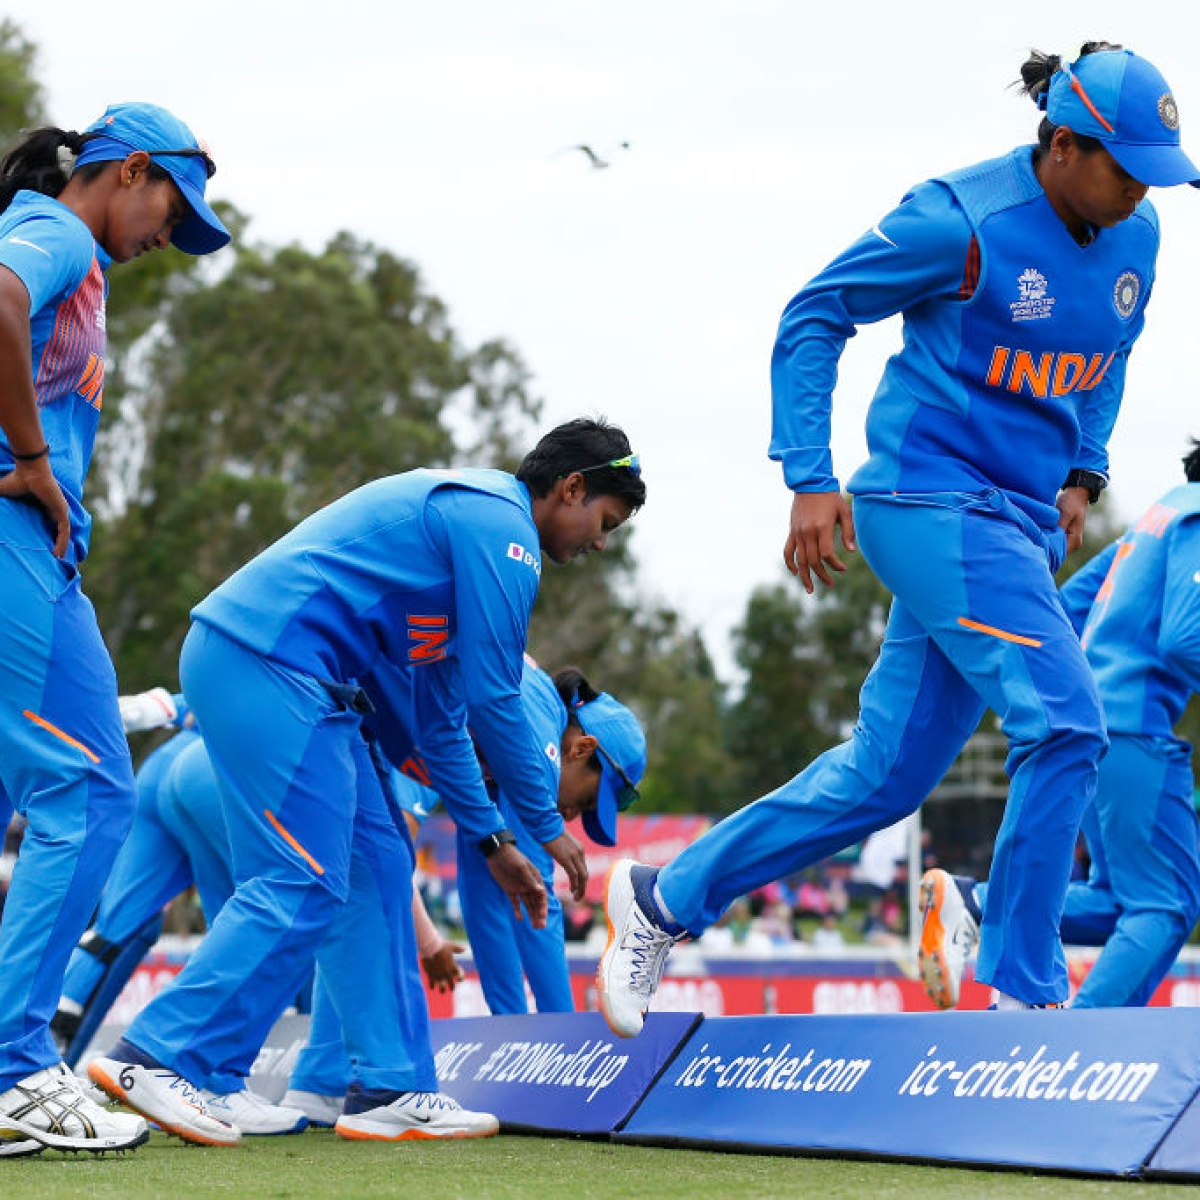 ICC Women's T20 WC IND vs SL: Where, when and how to watch live telecast